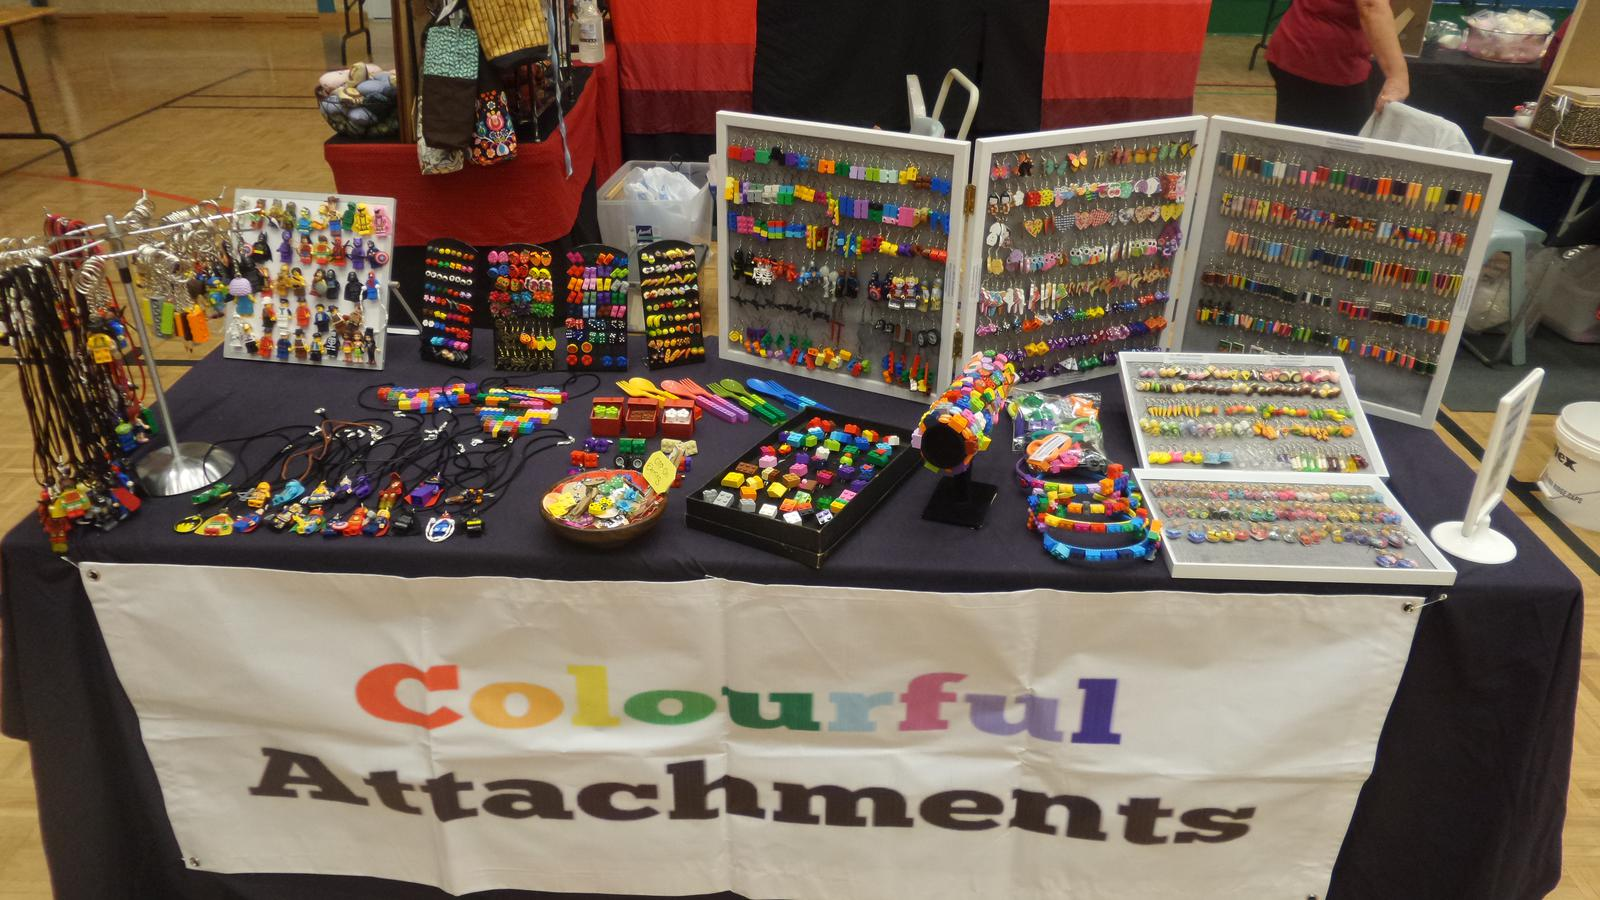 Display stall Colourful Attachments